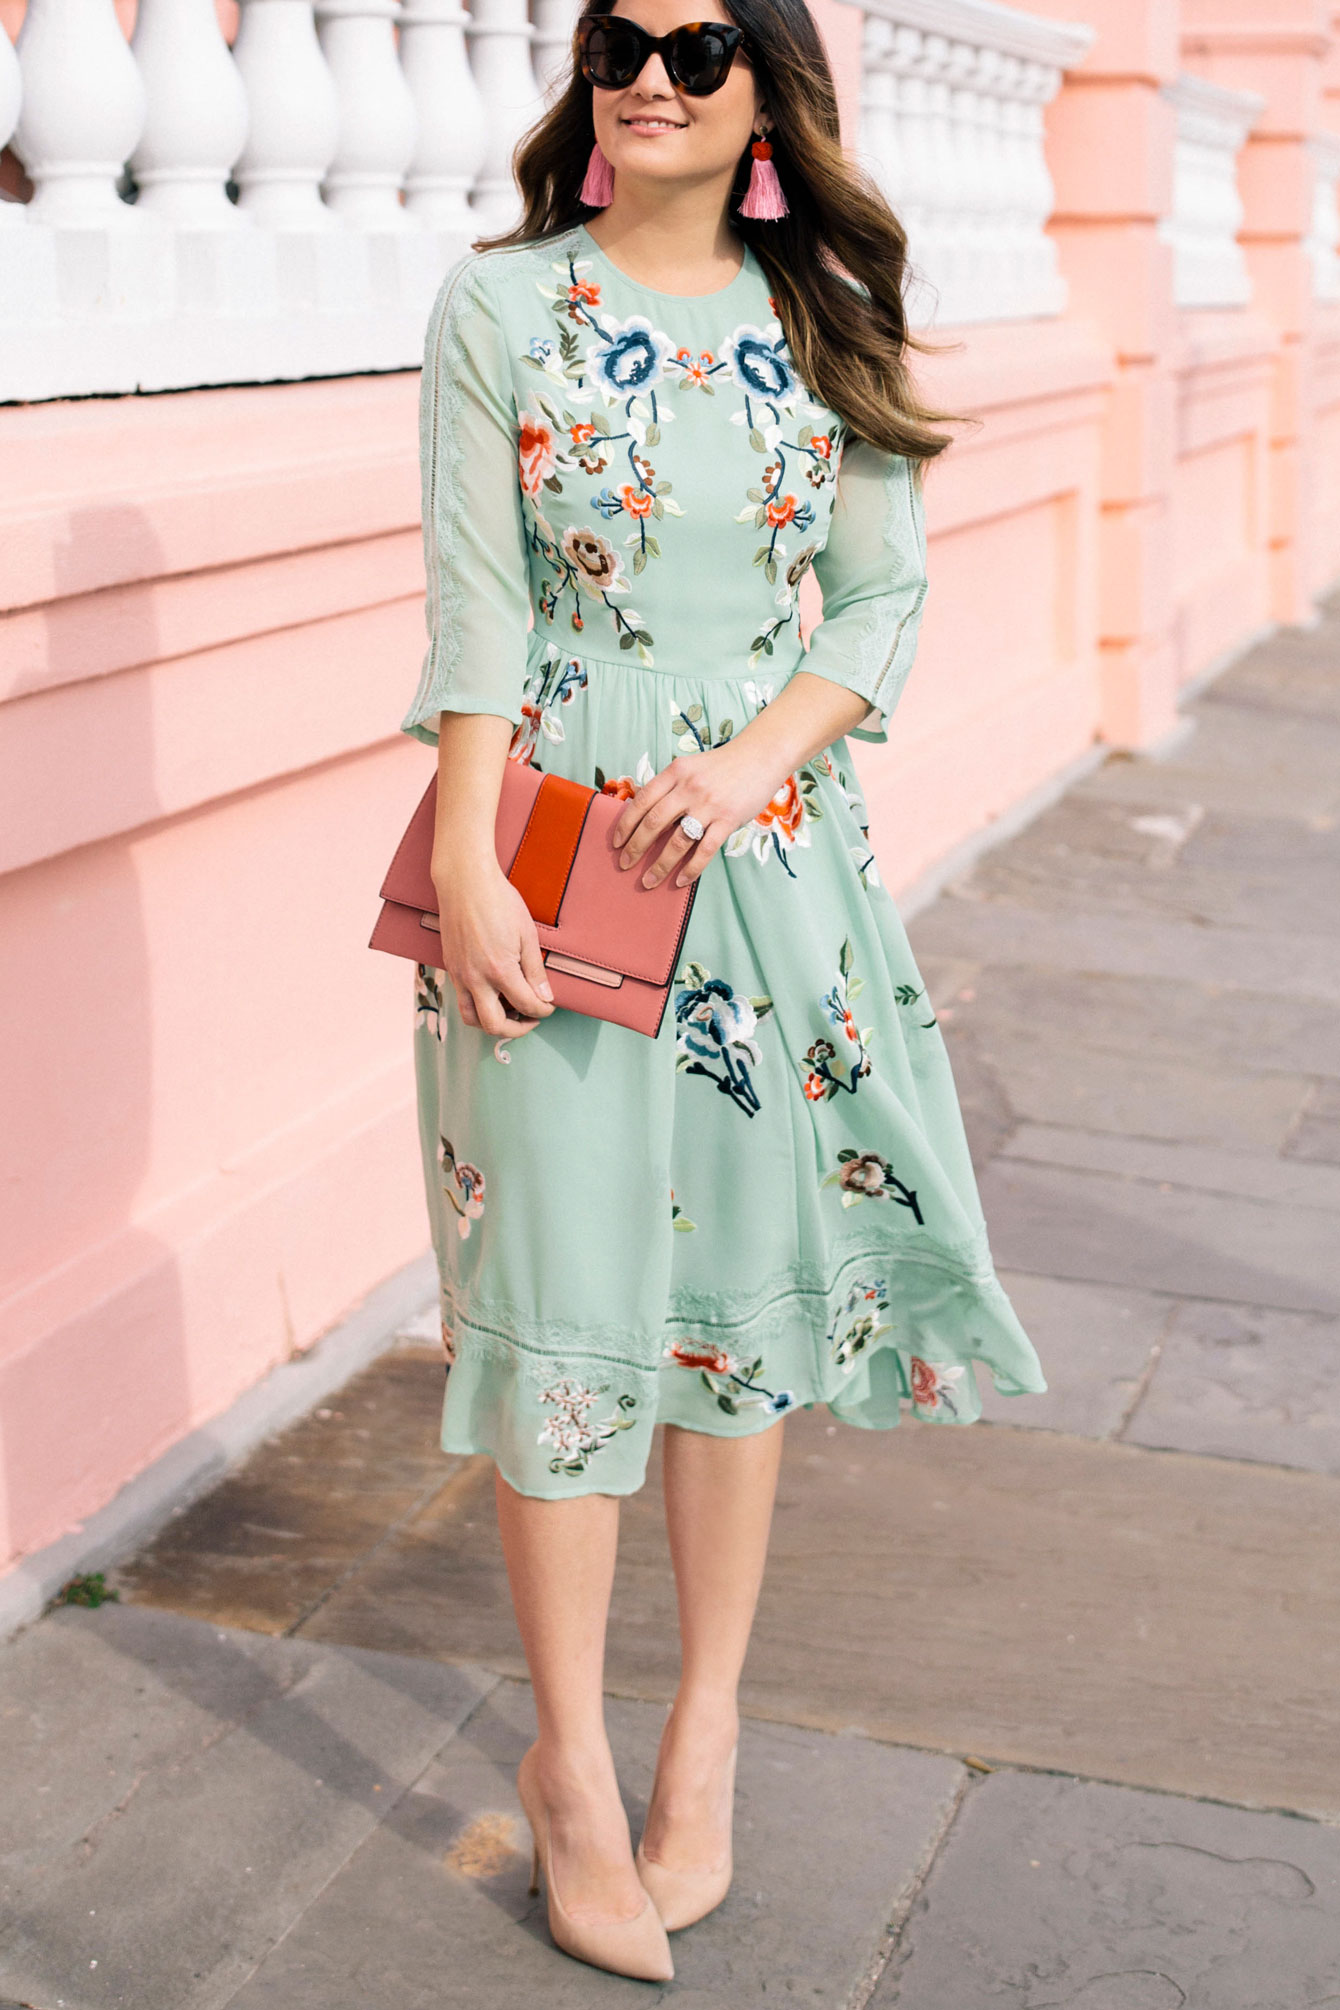 ASOS Green Embroidered Dress